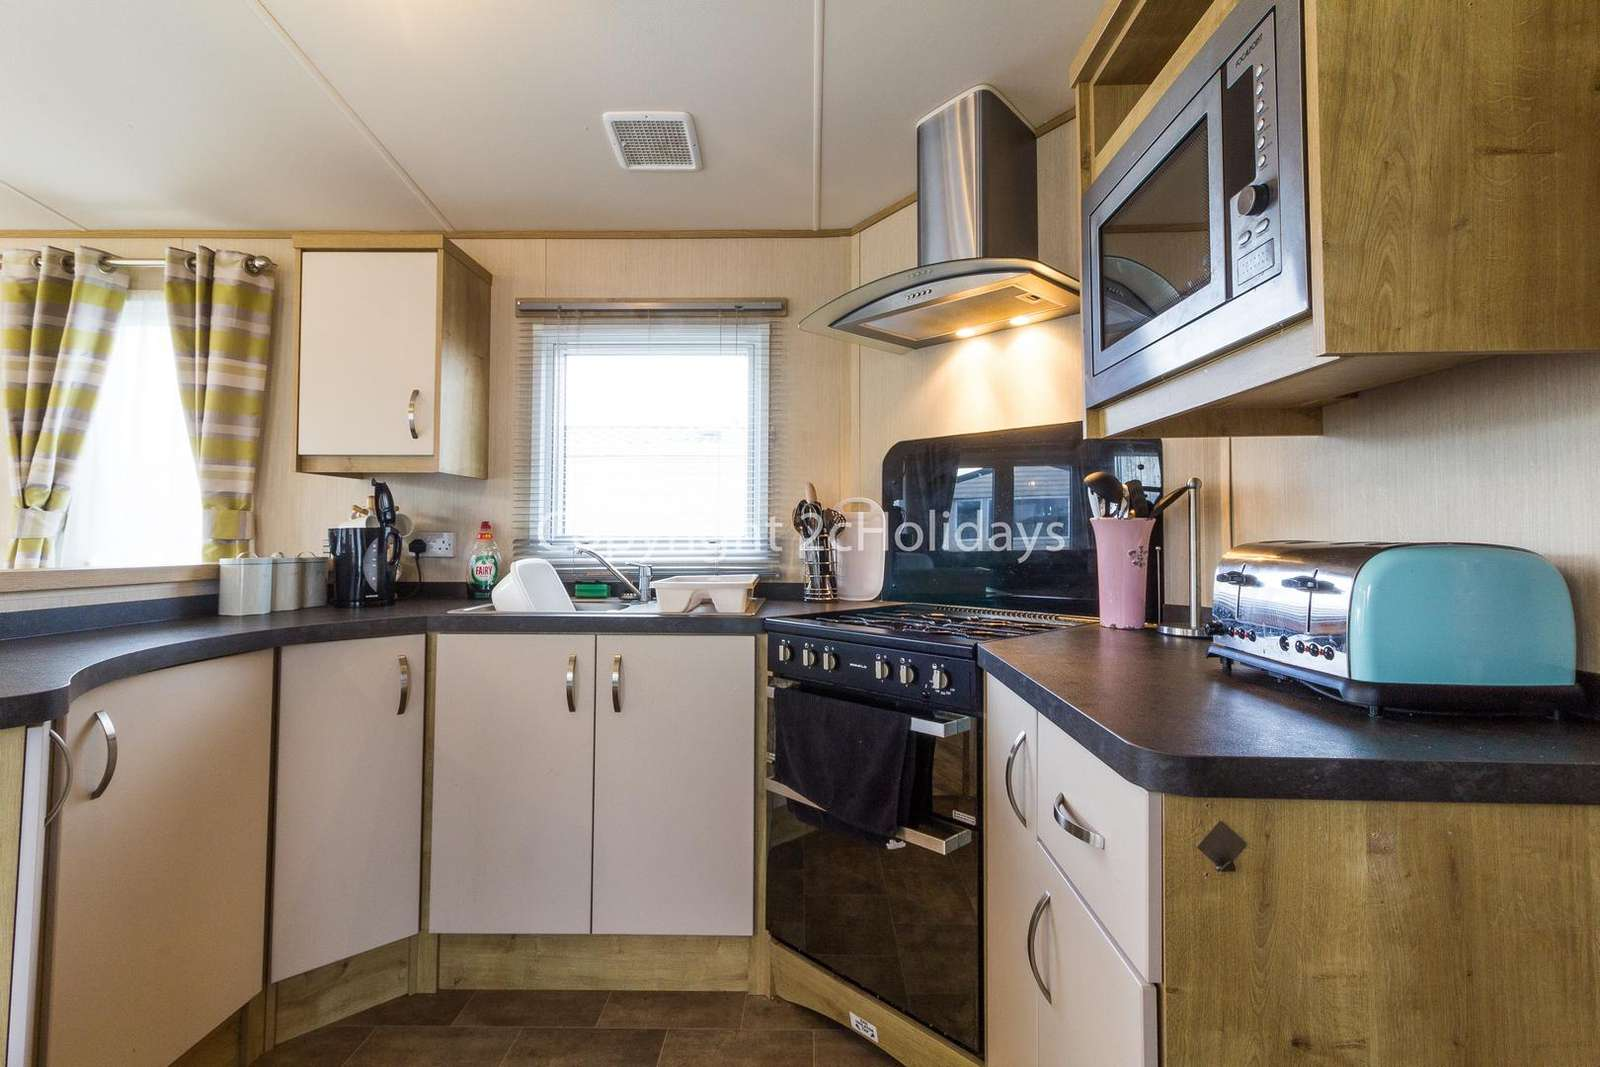 A fully equipped pet friendly accommodation, perfect for self-catering breaks!